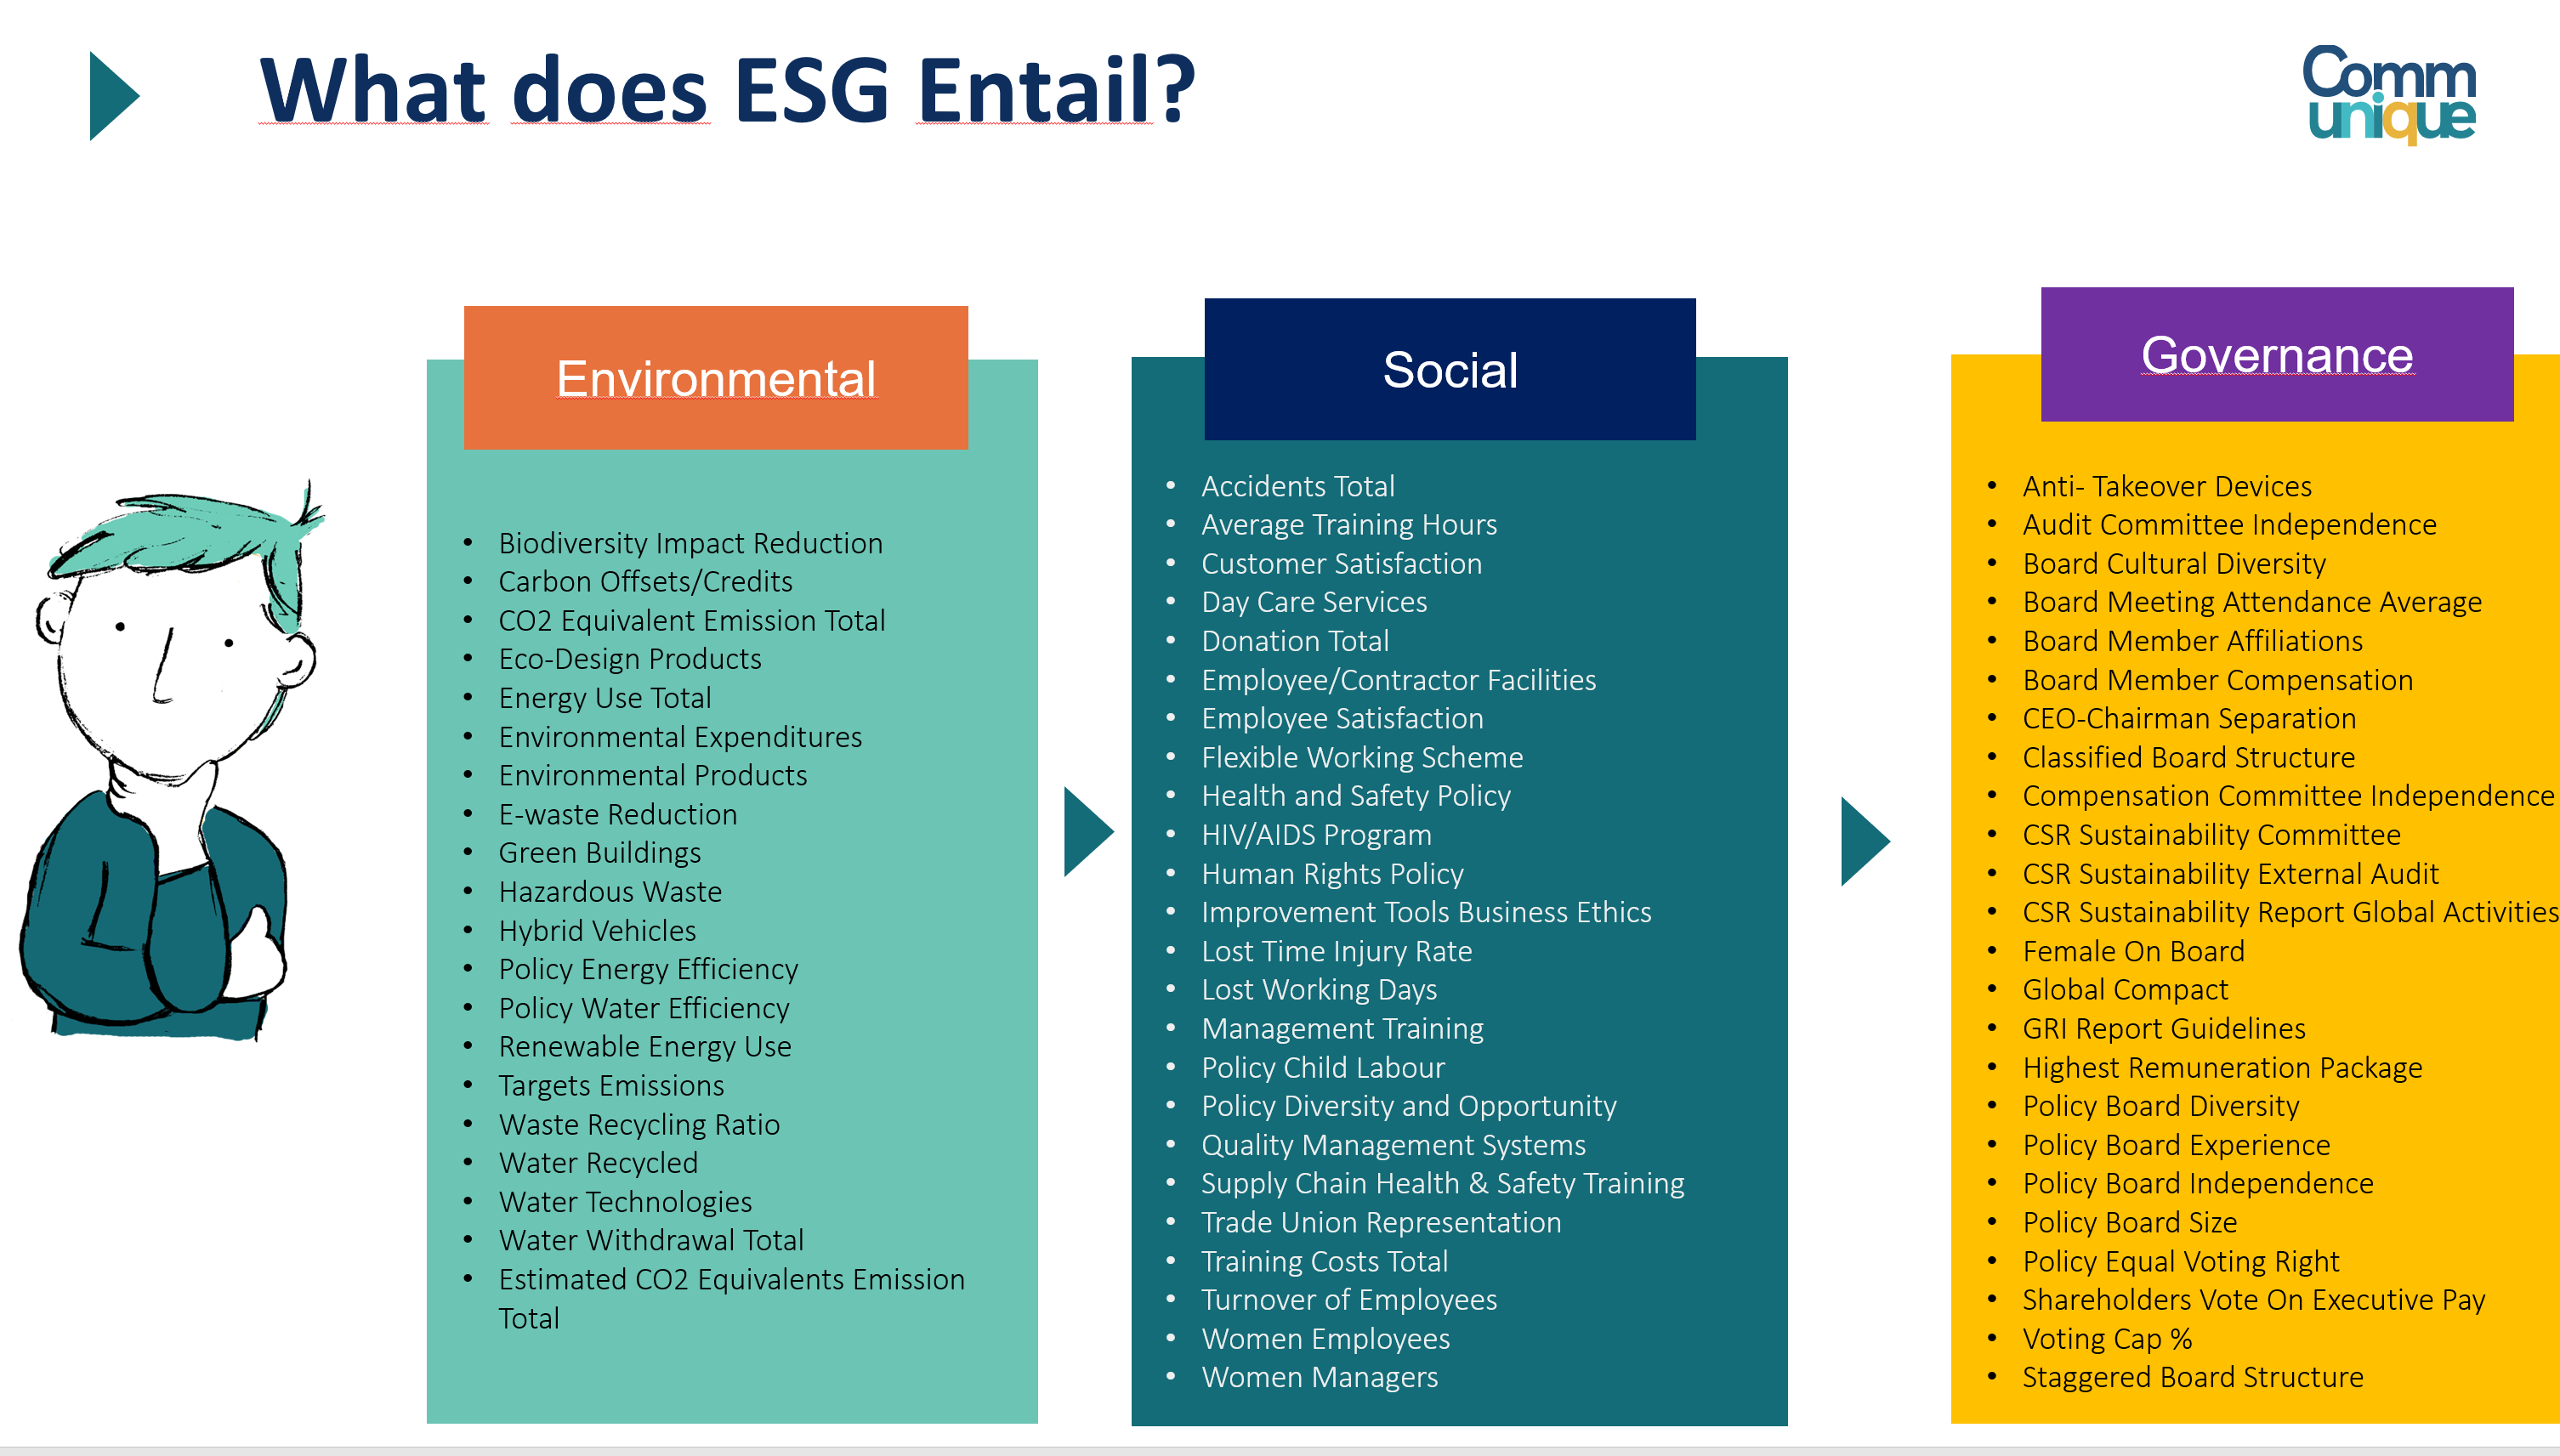 What is ESG and how does it differ from CSR?